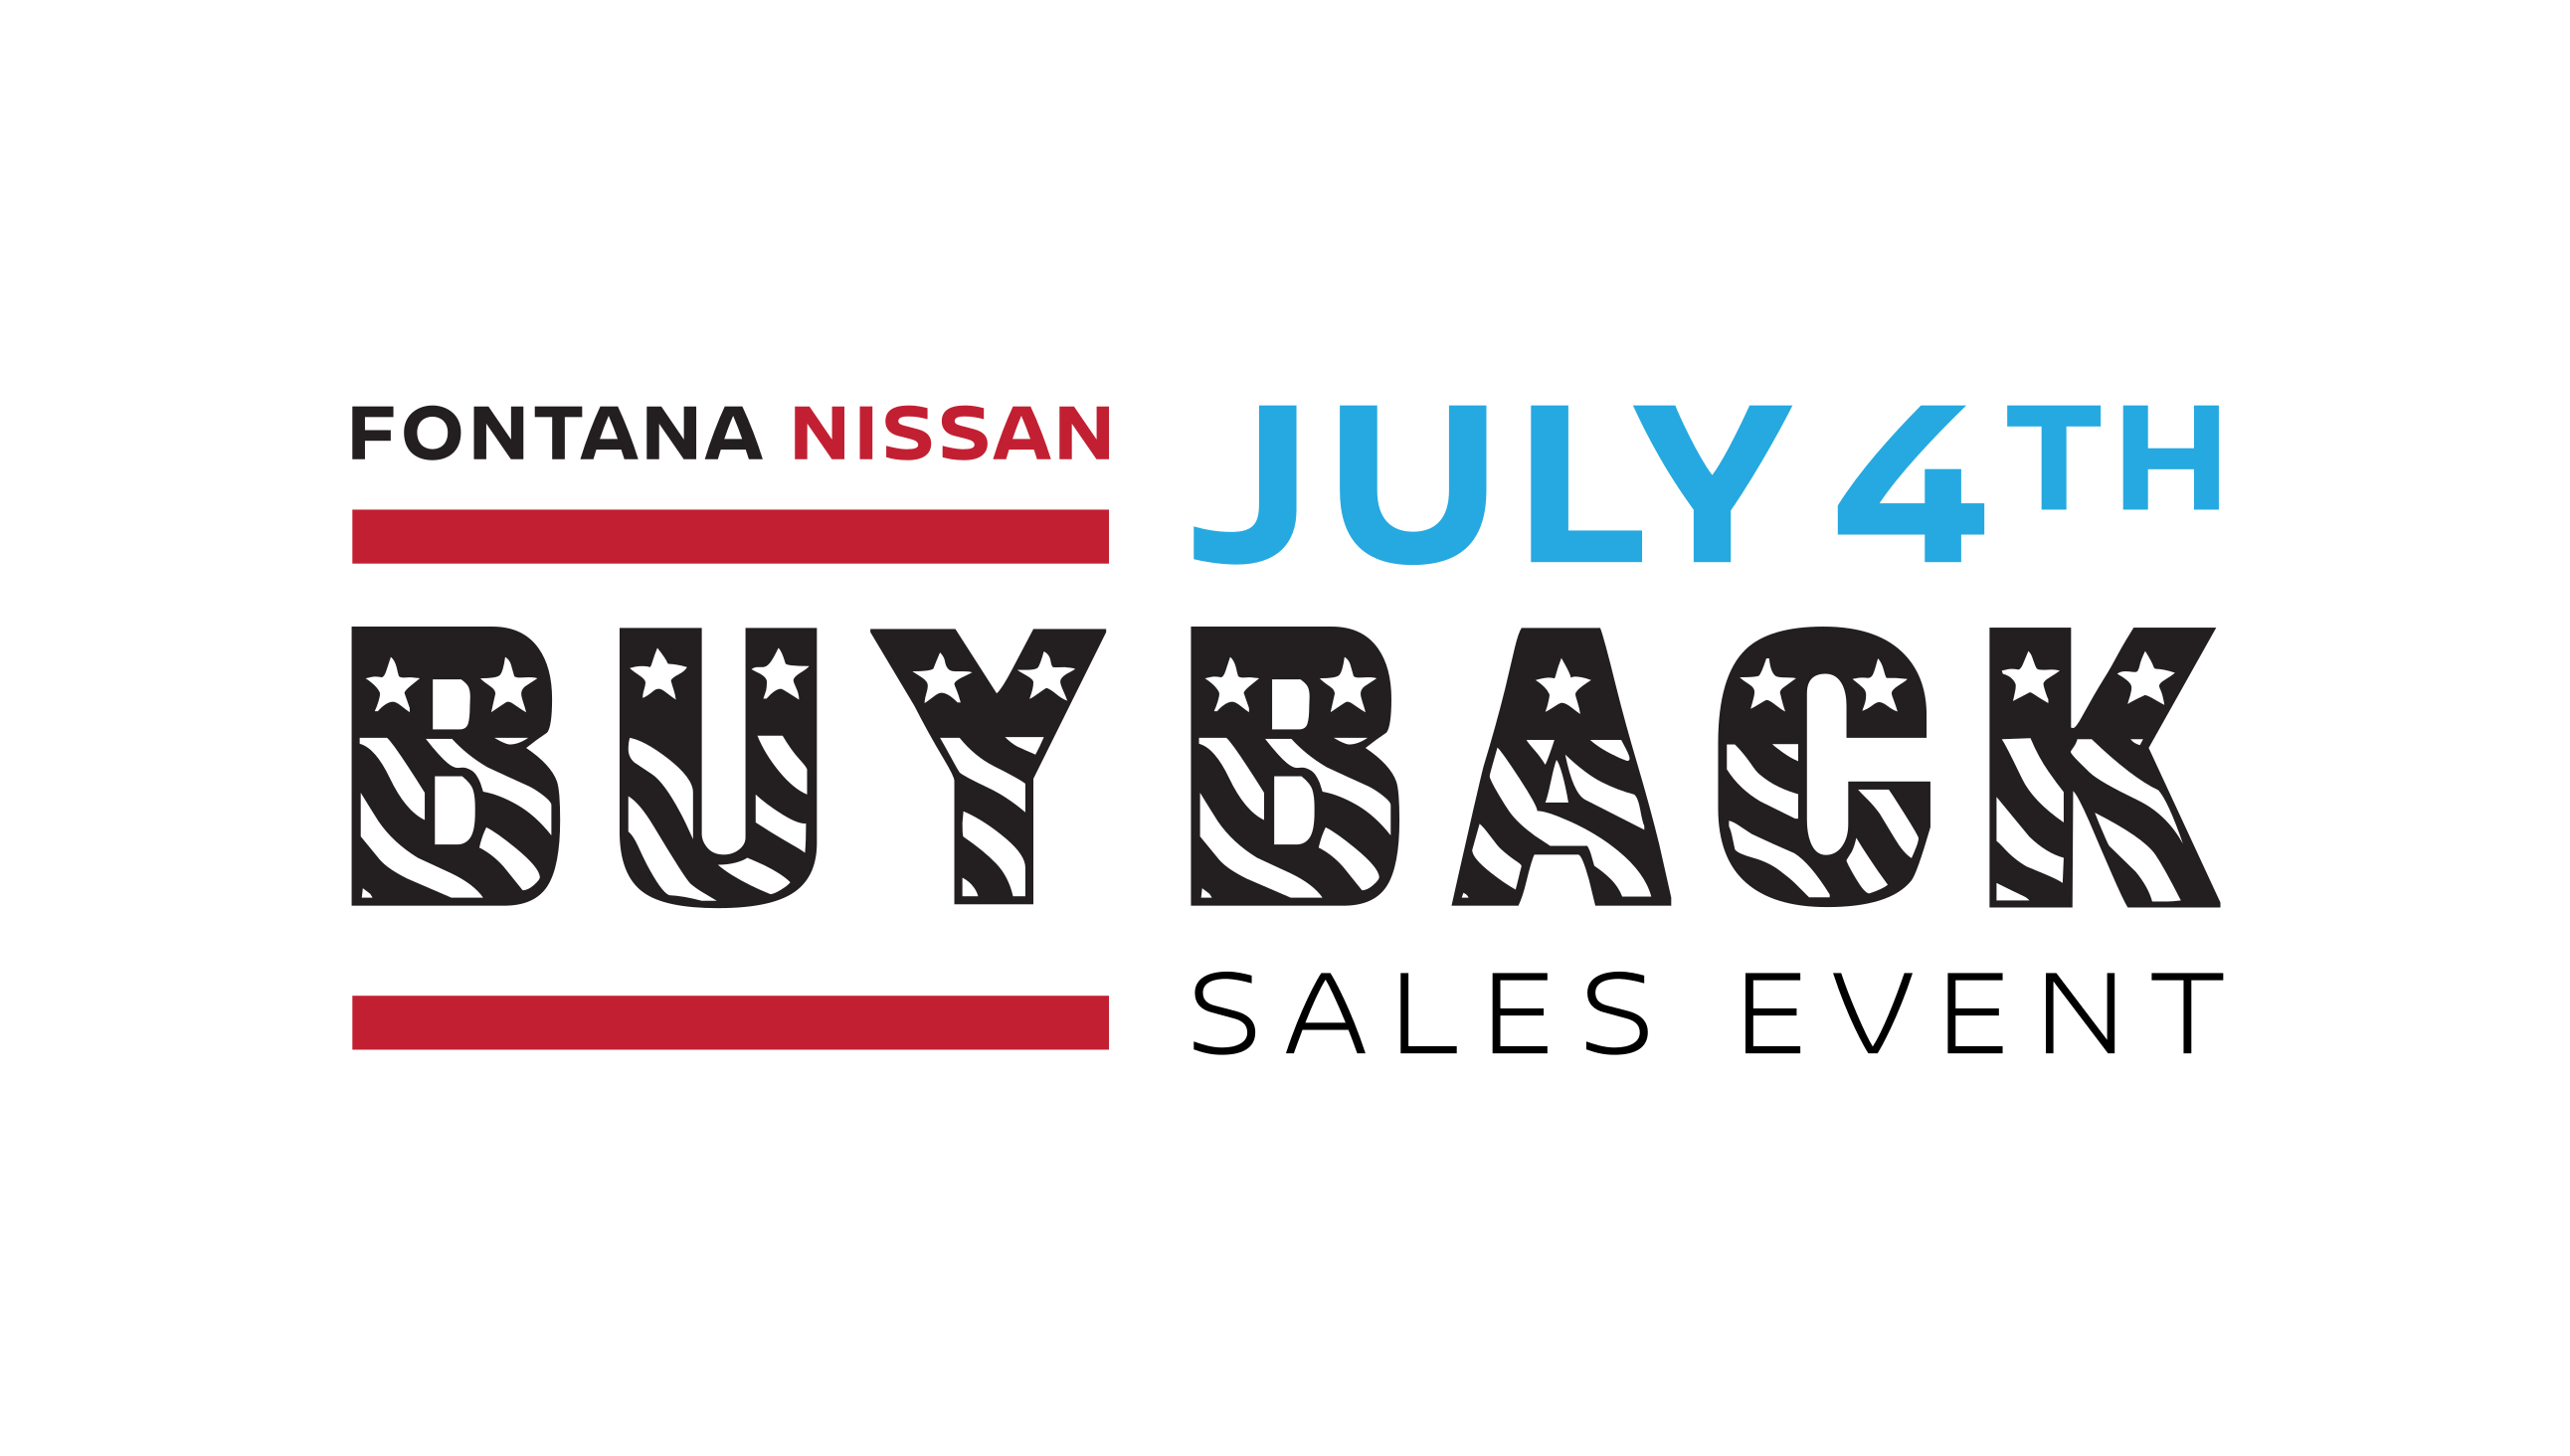 Fontana Nissan July 4th Buy Back Sales Event